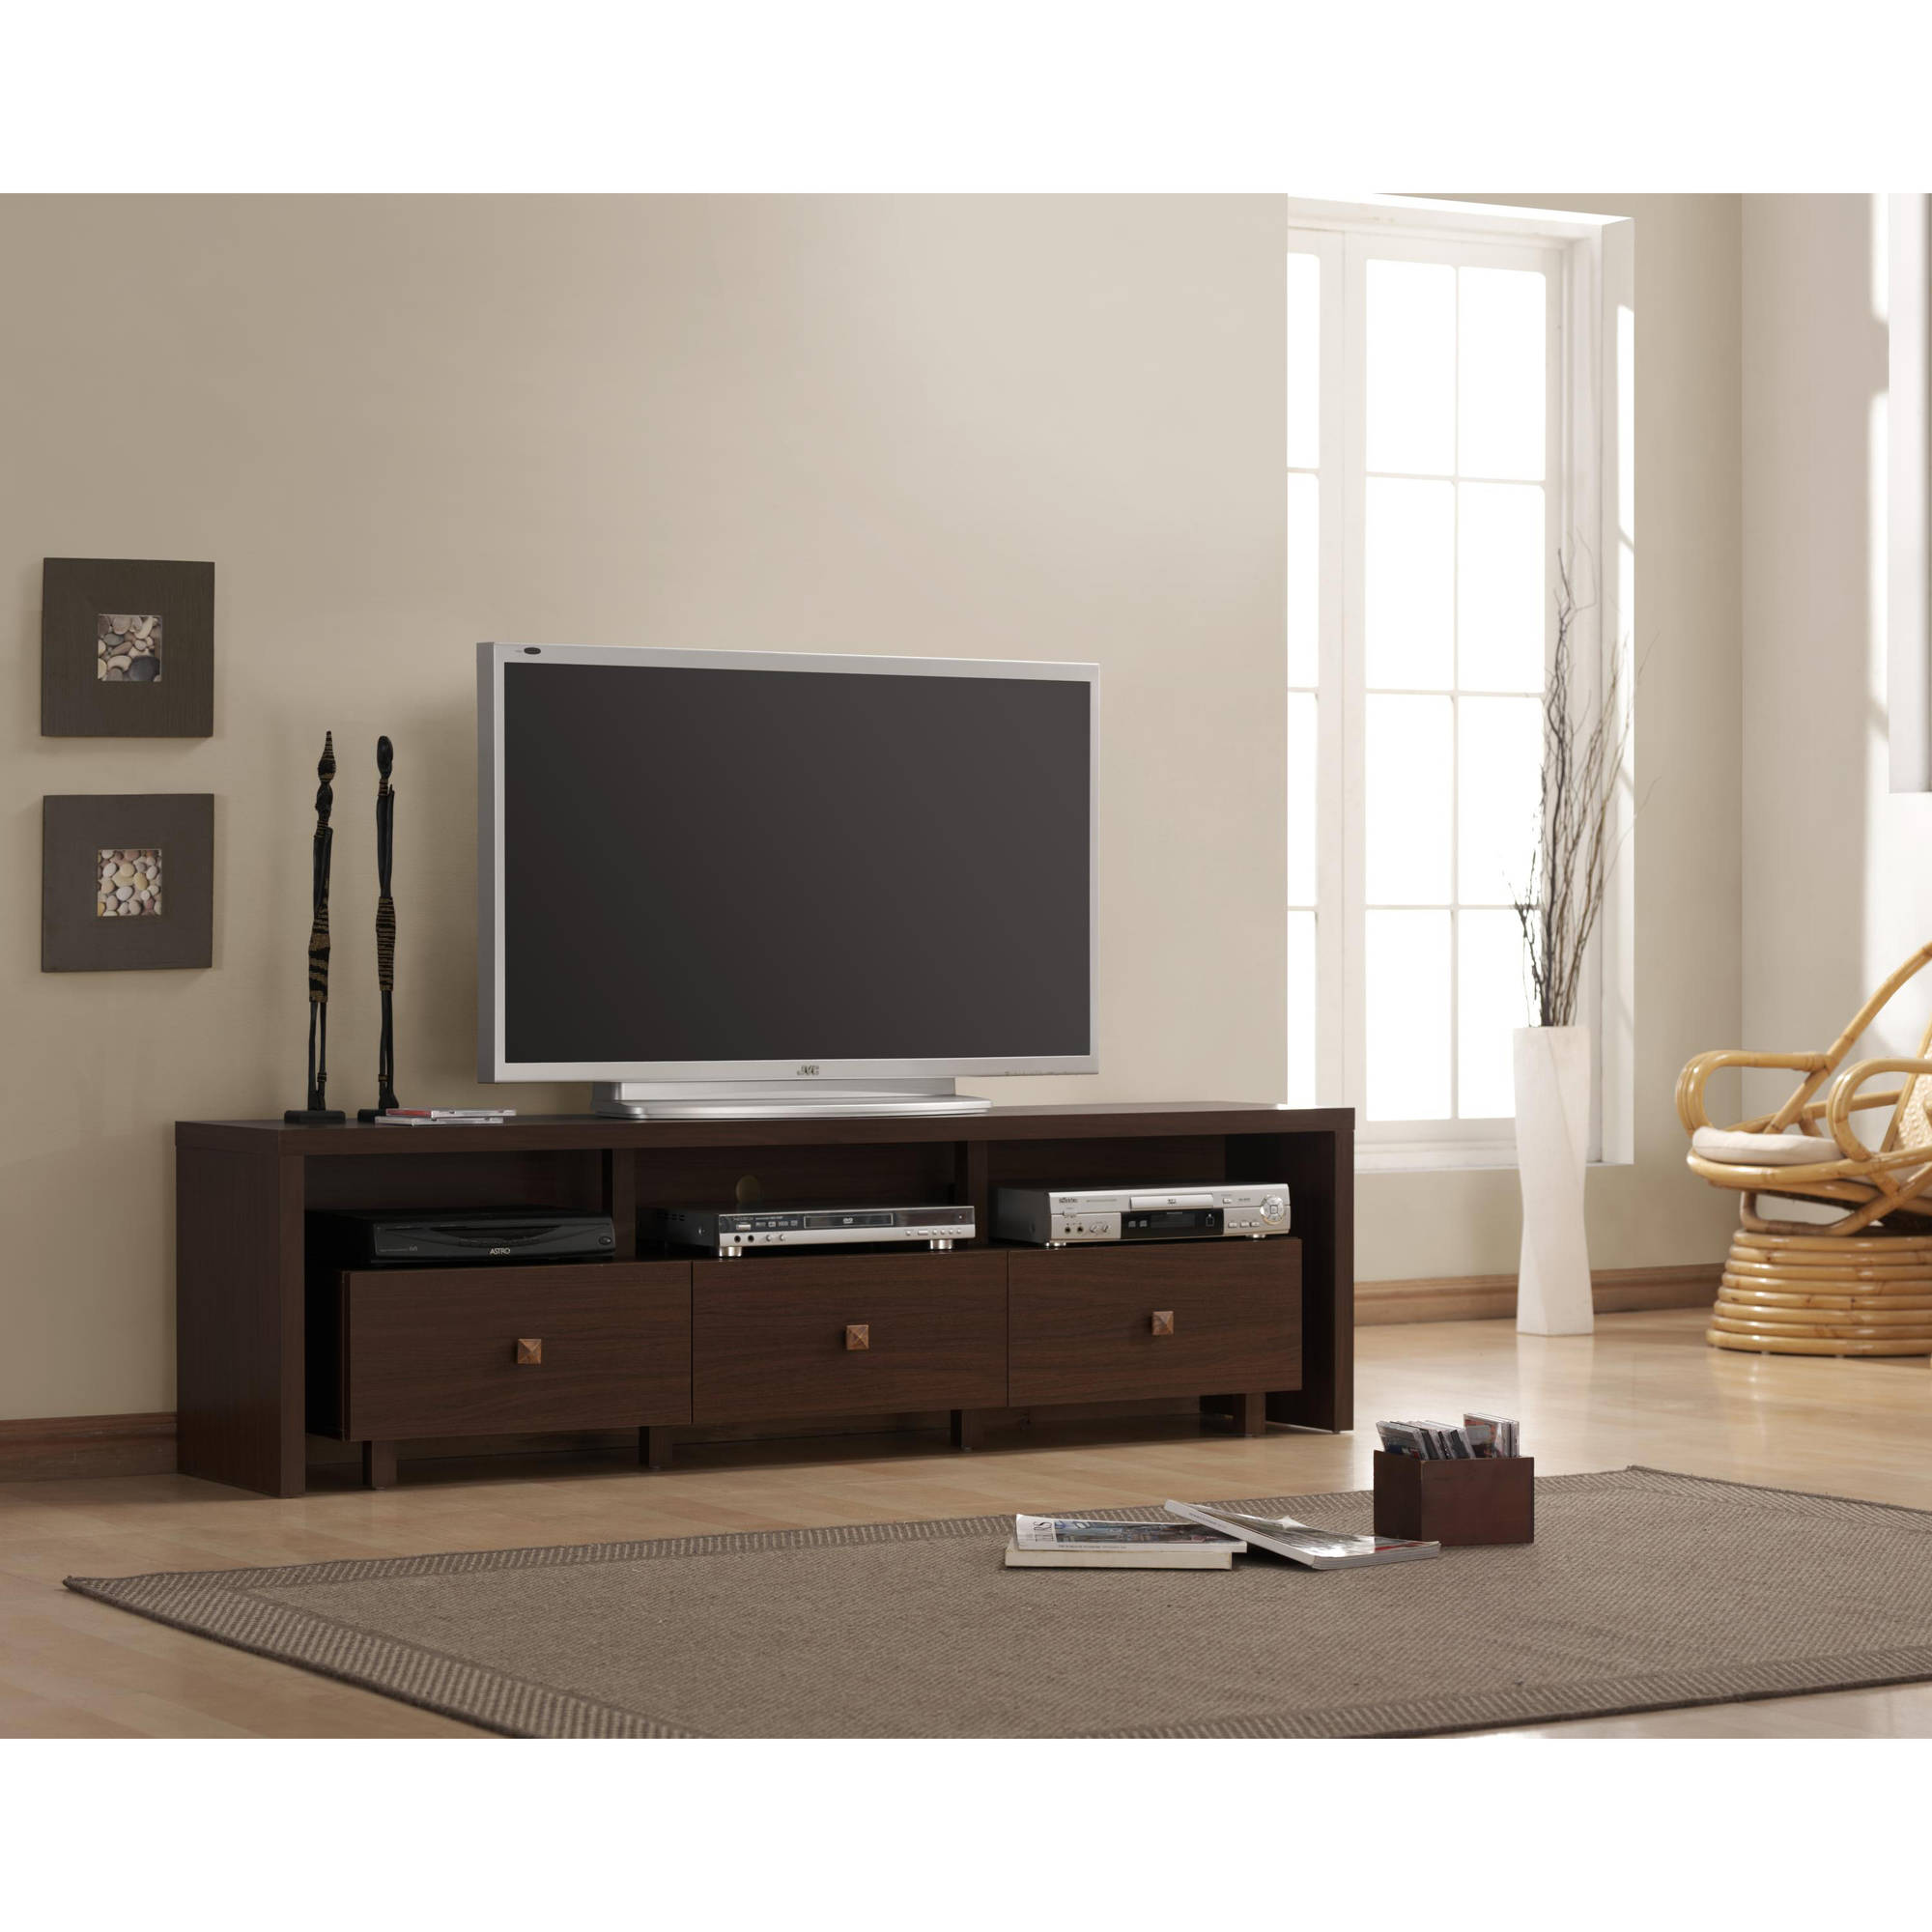 Tv Stand 70 Inch